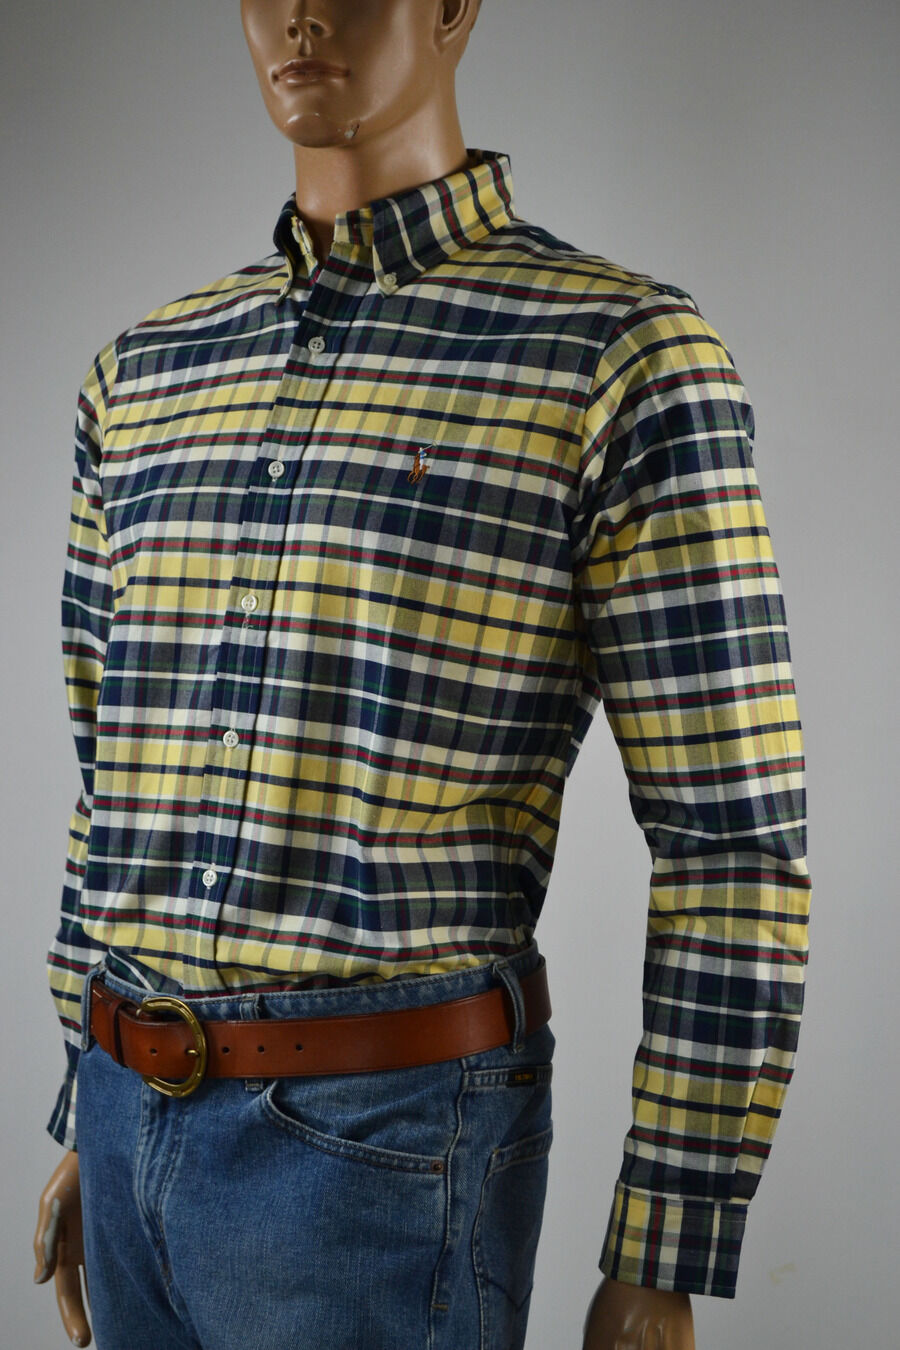 Ralph Lauren giallo,Navy Custom Fit giallo,Navy Lauren Plaid Long Sleeve Shirt Pony-Small-NWT 88f31c